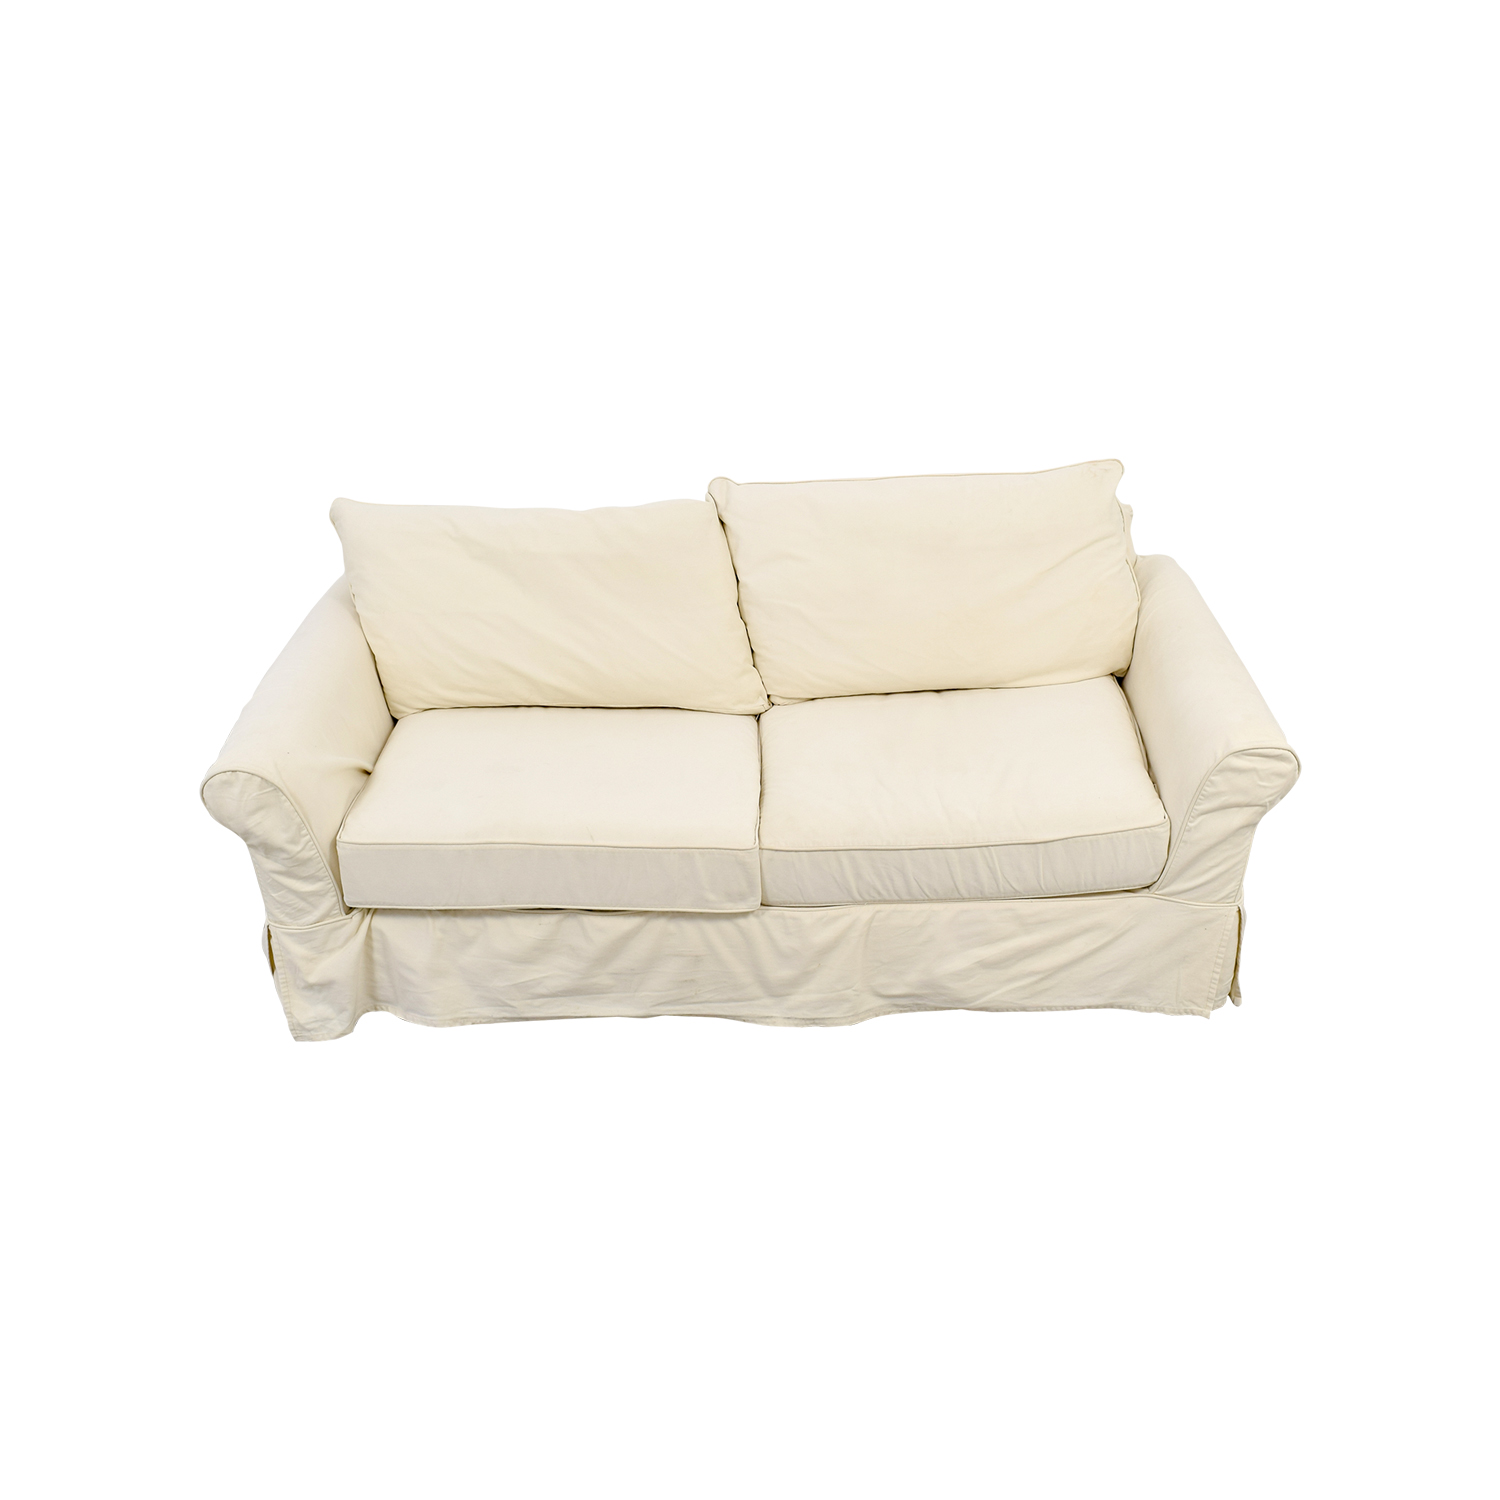 Pottery Barn Pottery Barn White Comfort Slip Covered Sofa for sale